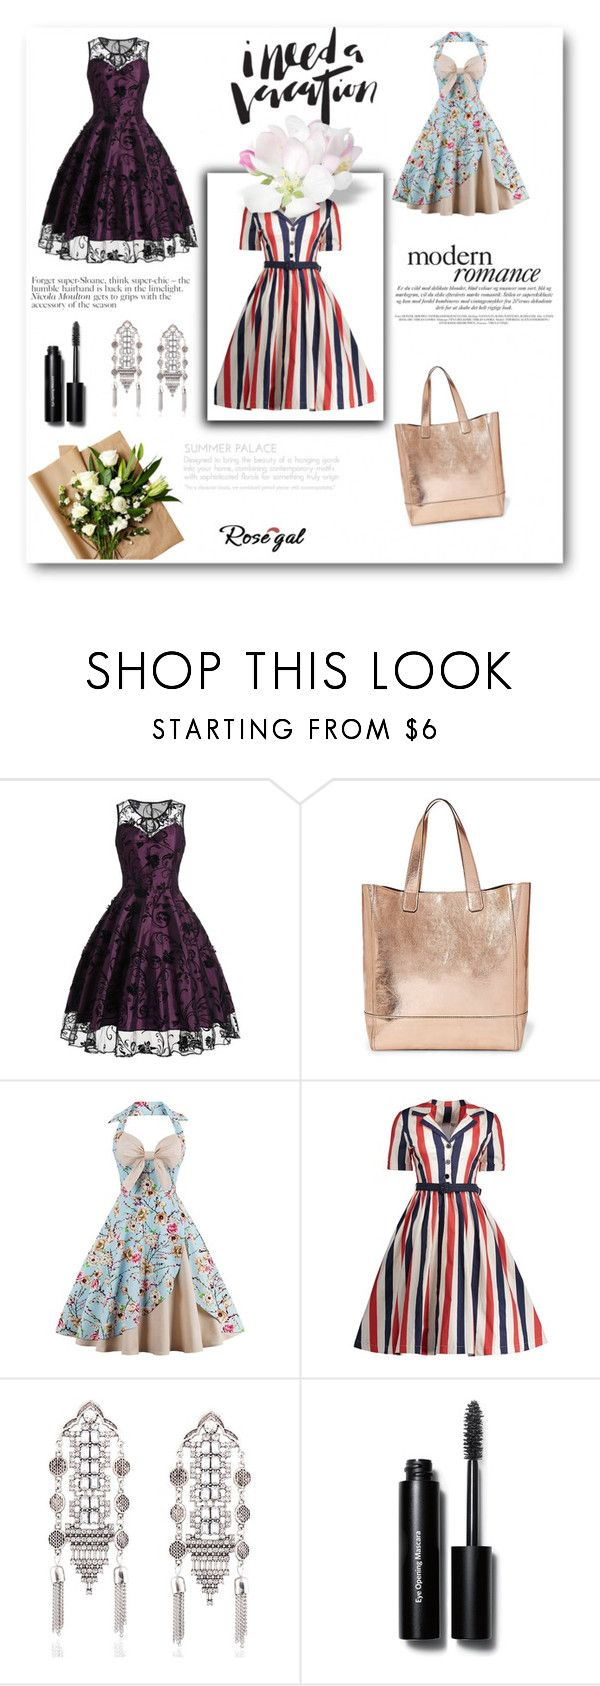 """""""Rosegal 2/II"""" by nermina-okanovic ❤ liked on Polyvore featuring Steve Madden, Bobbi Brown Cosmetics, vintage and rosegal"""